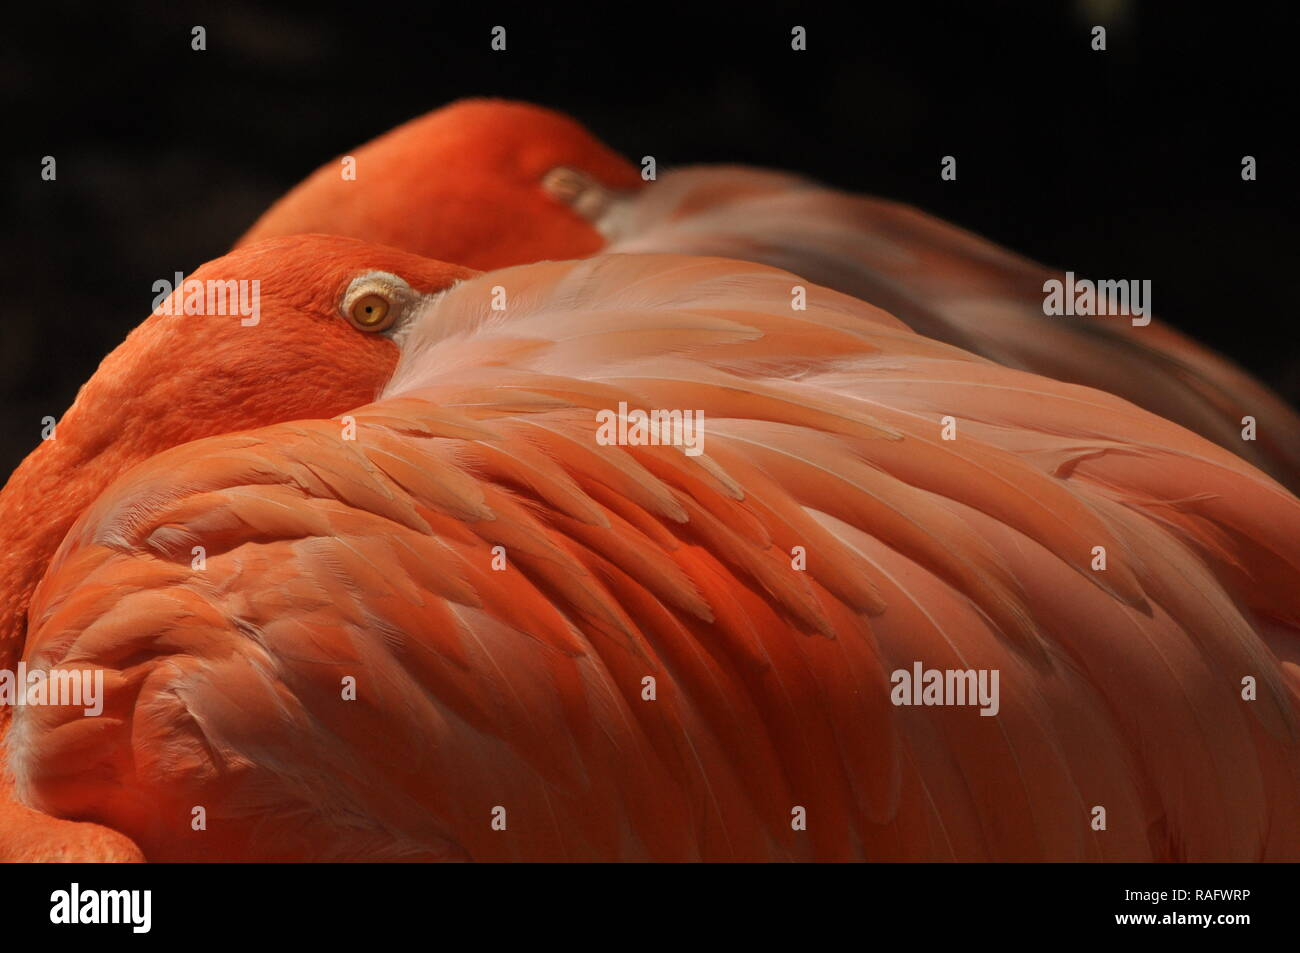 Two coral flamingos - Stock Image